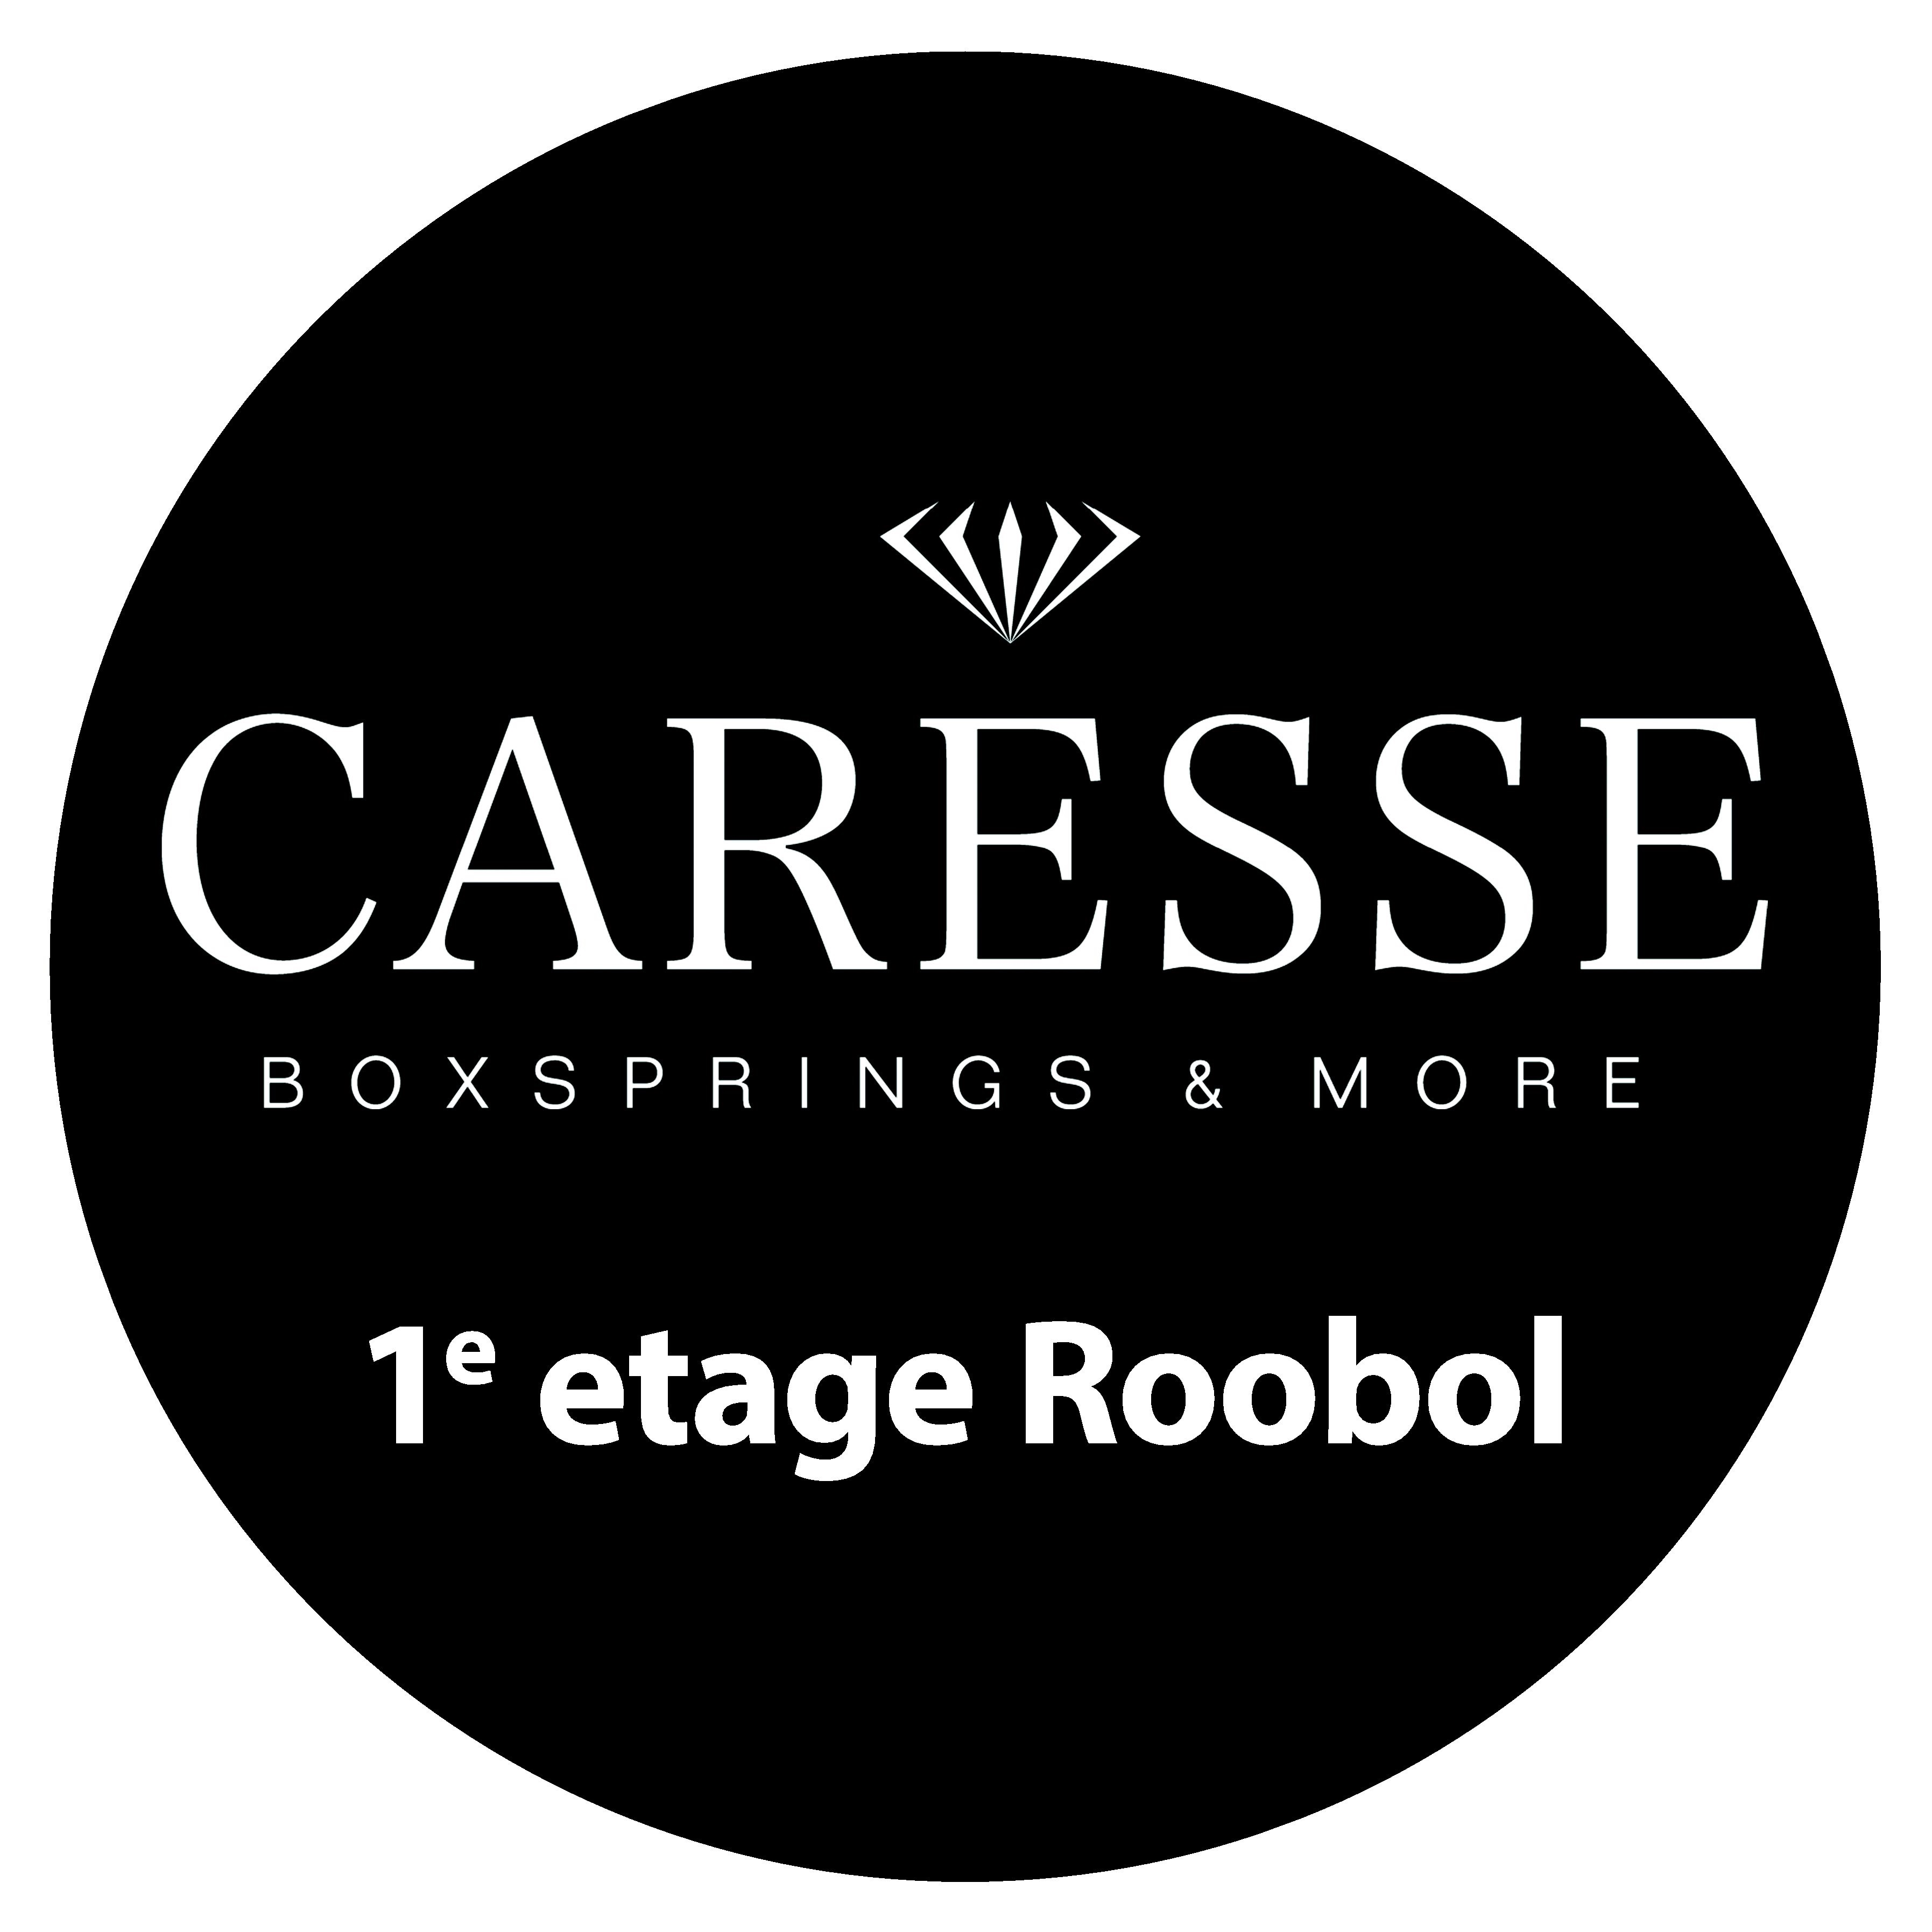 Caresse Boxsprings & More